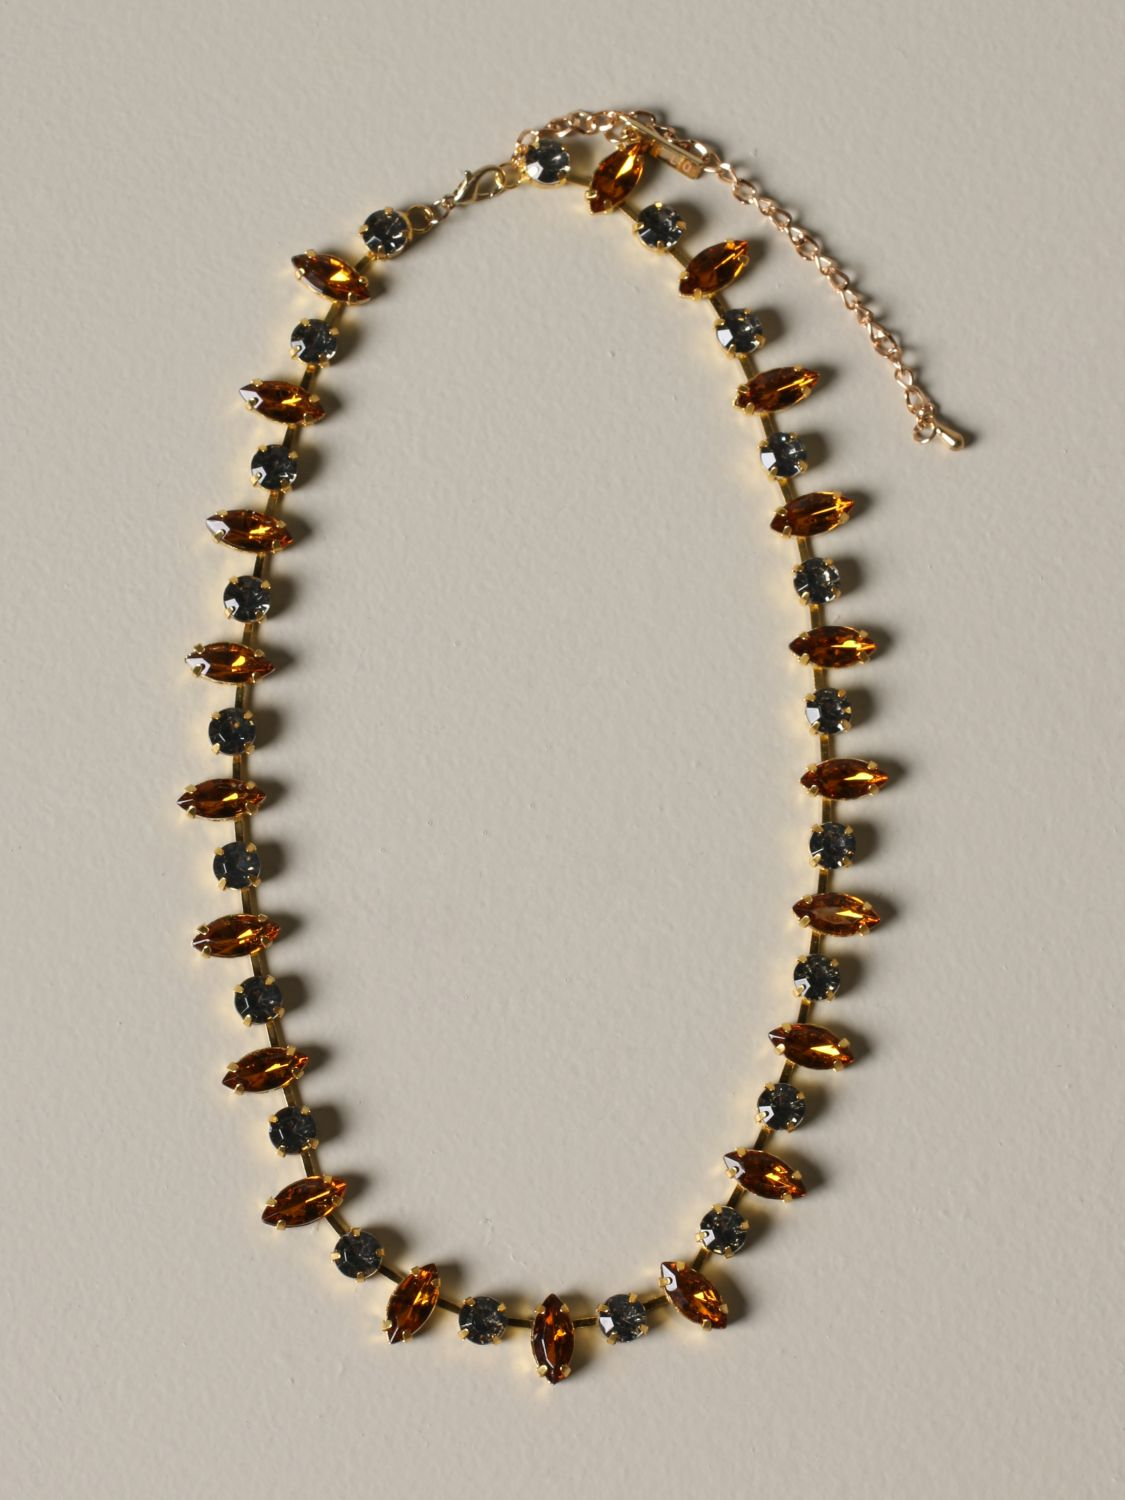 Jewel Allujewels: Allu'jewels Miuccia metal necklace grey 1